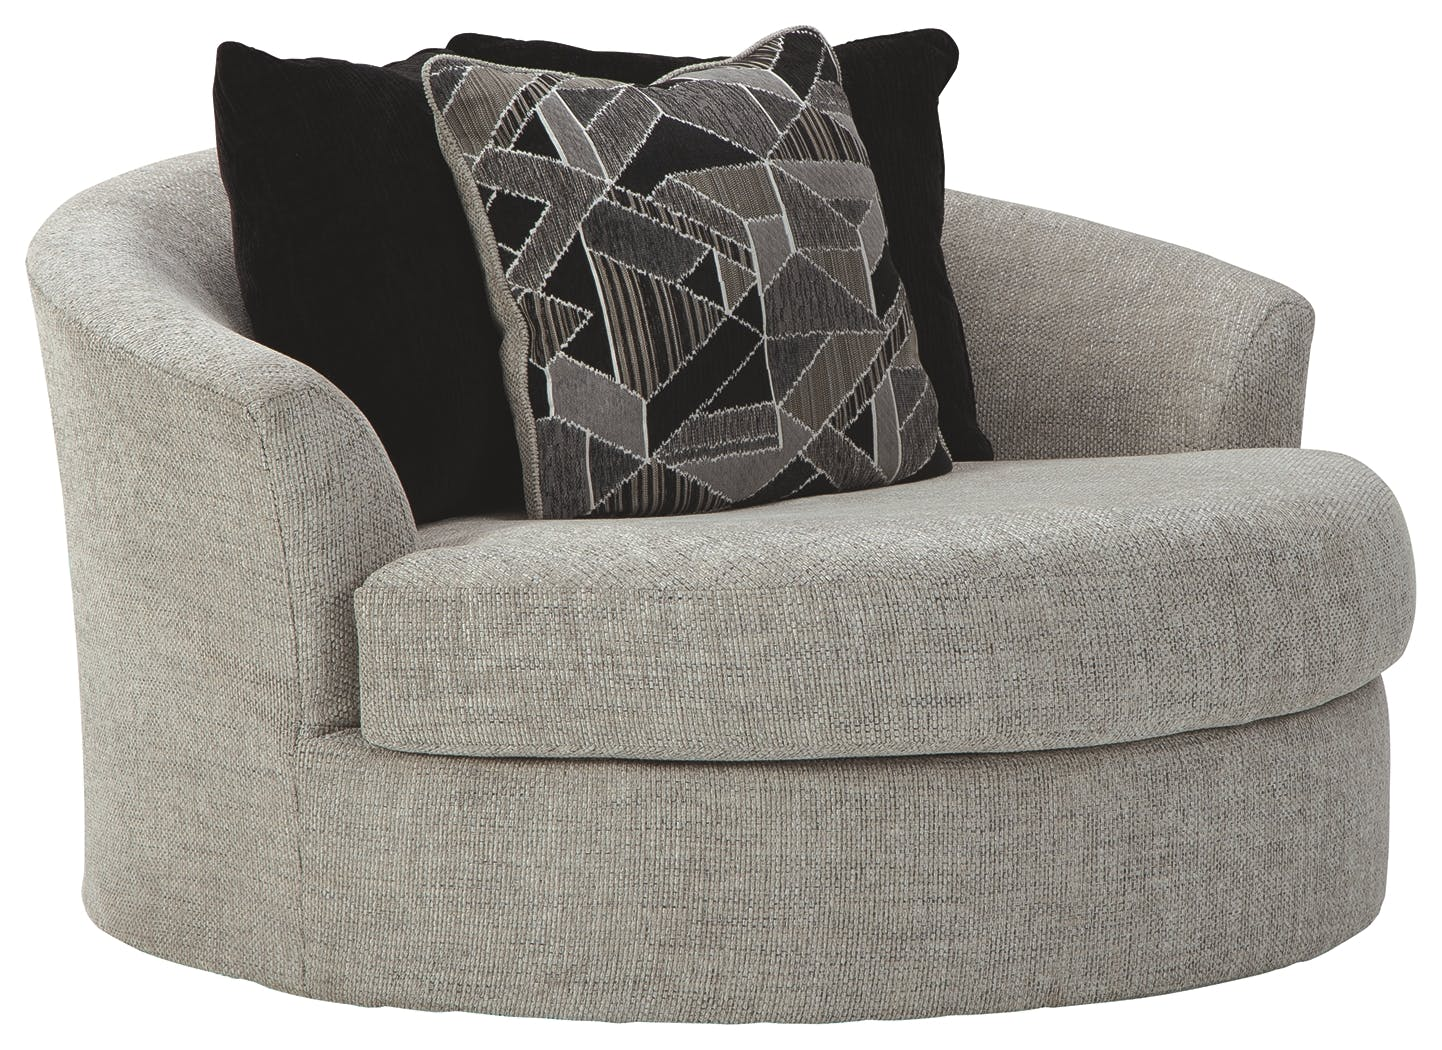 Image of: Benchcraft Living Room Megginson Oversized Chair 9600621 Markson S Furniture Rochester Ny